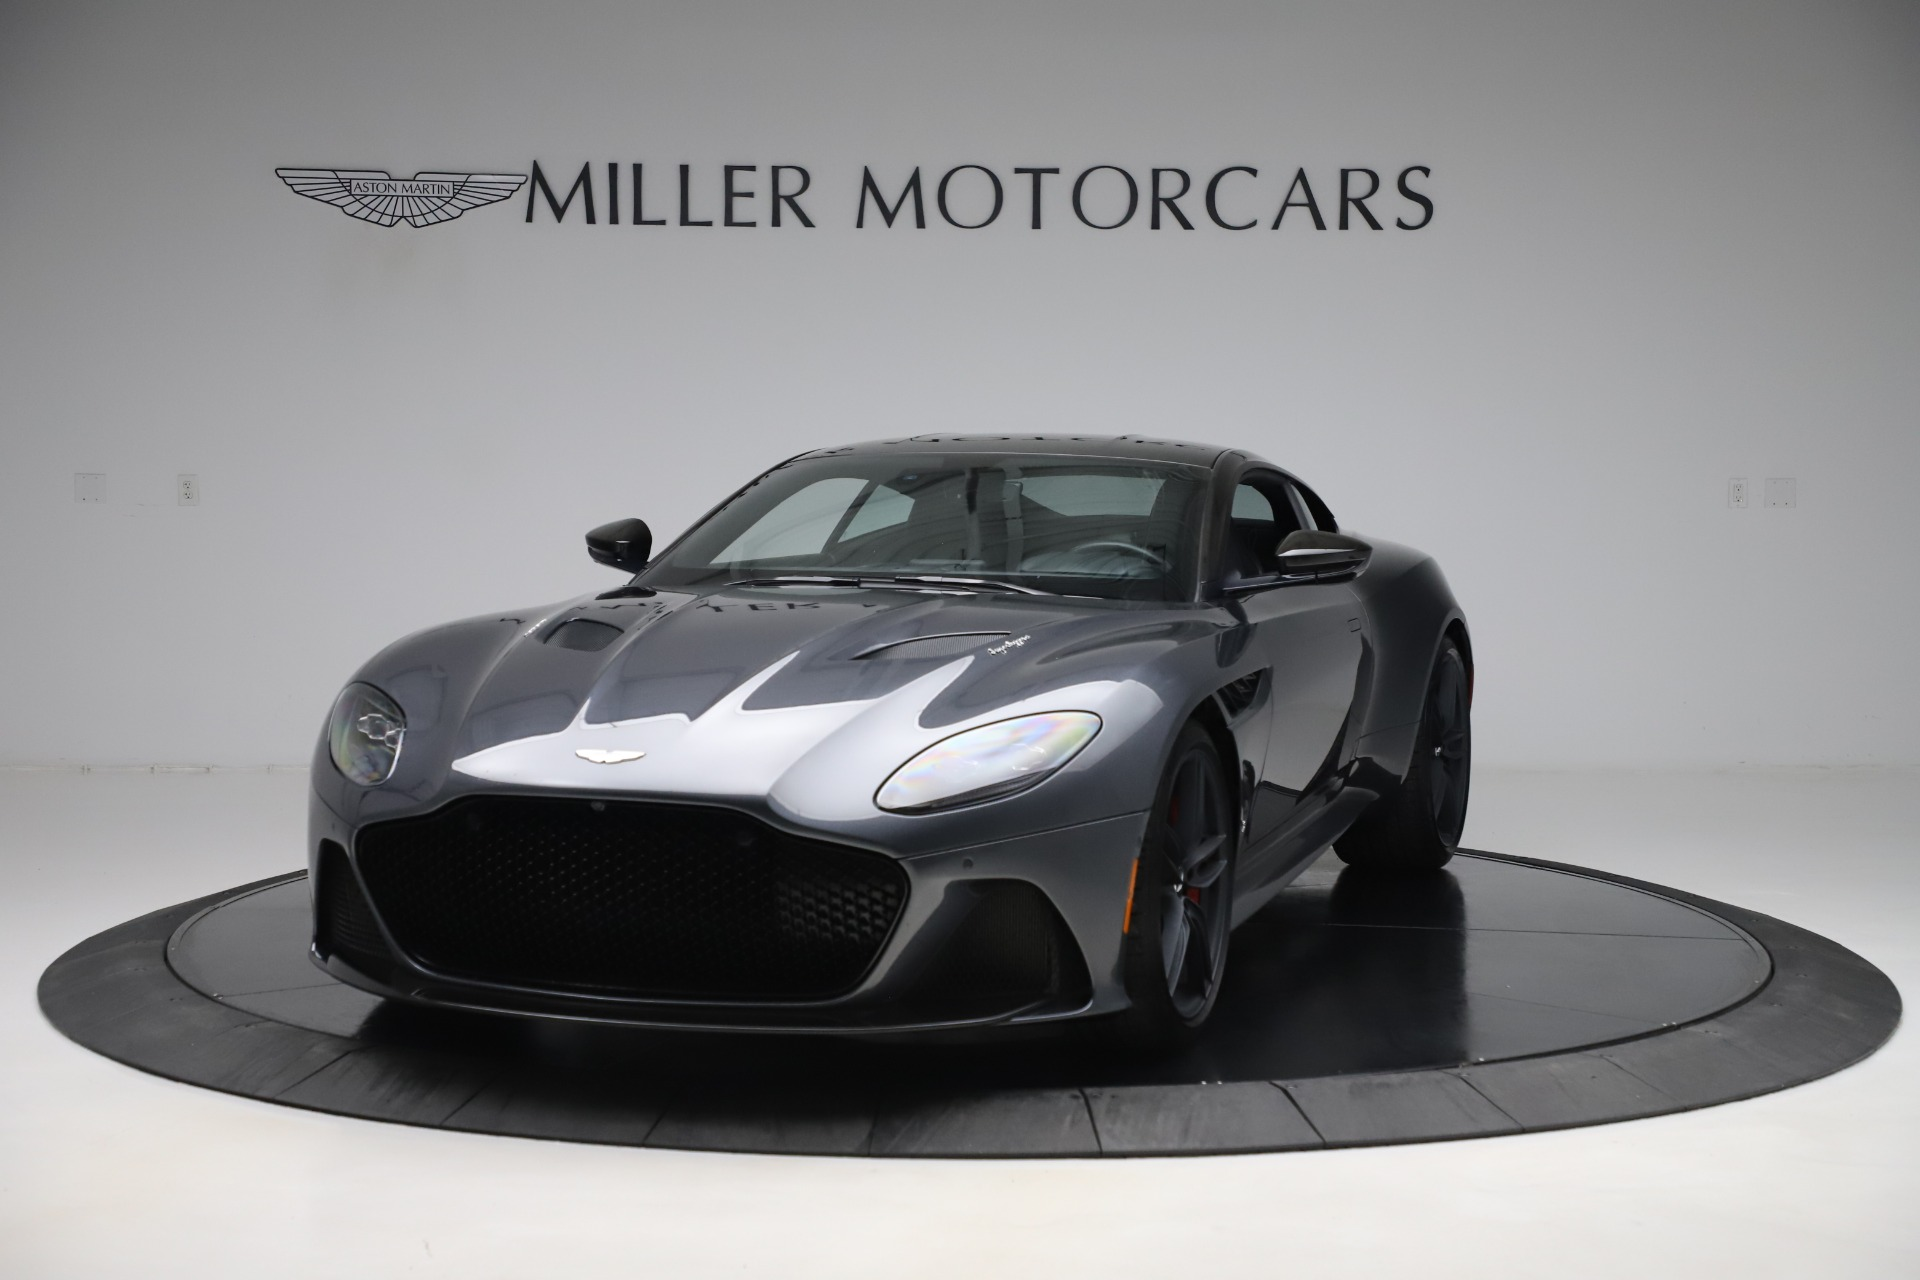 Used 2019 Aston Martin DBS Superleggera For Sale In Greenwich, CT 3570_p2